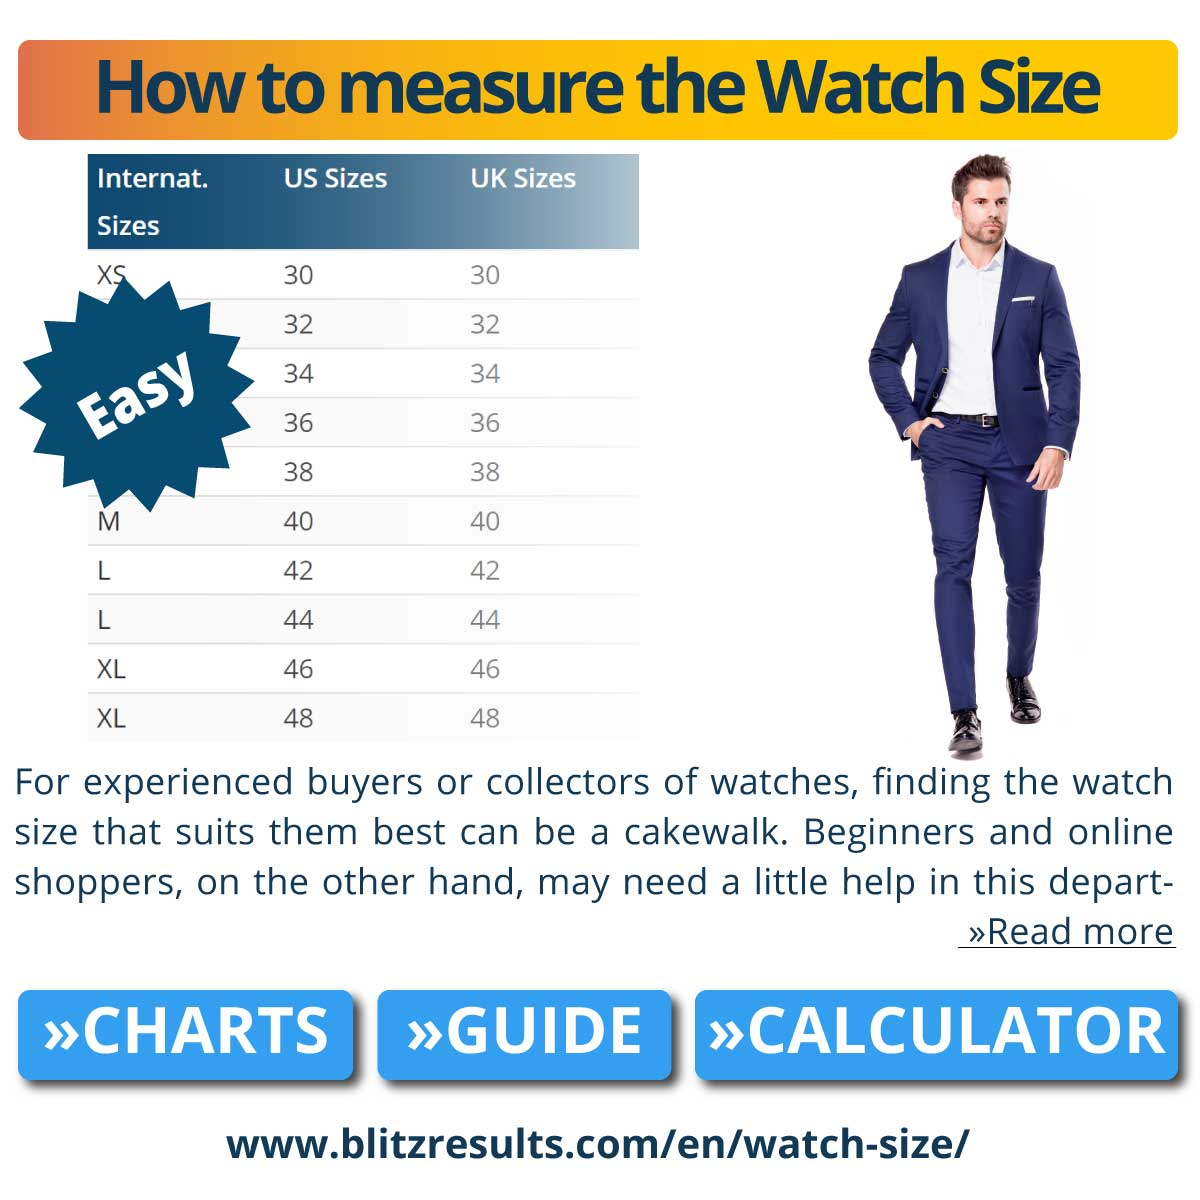 How to measure the Watch Size